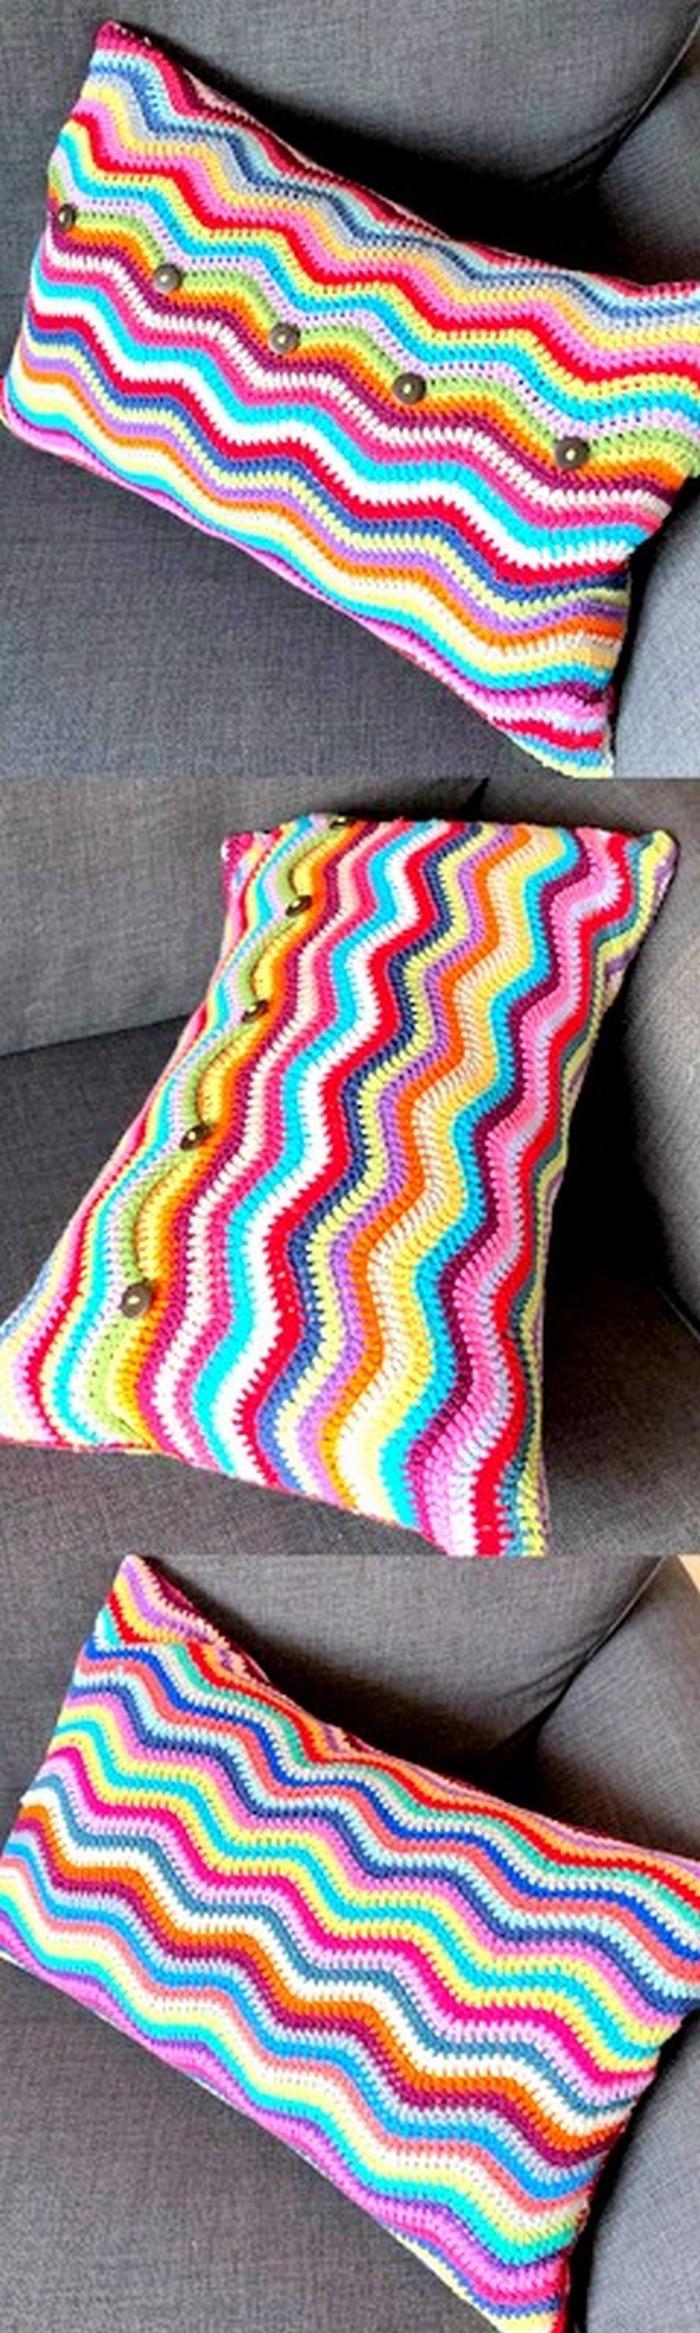 colorful crochet pillow cover